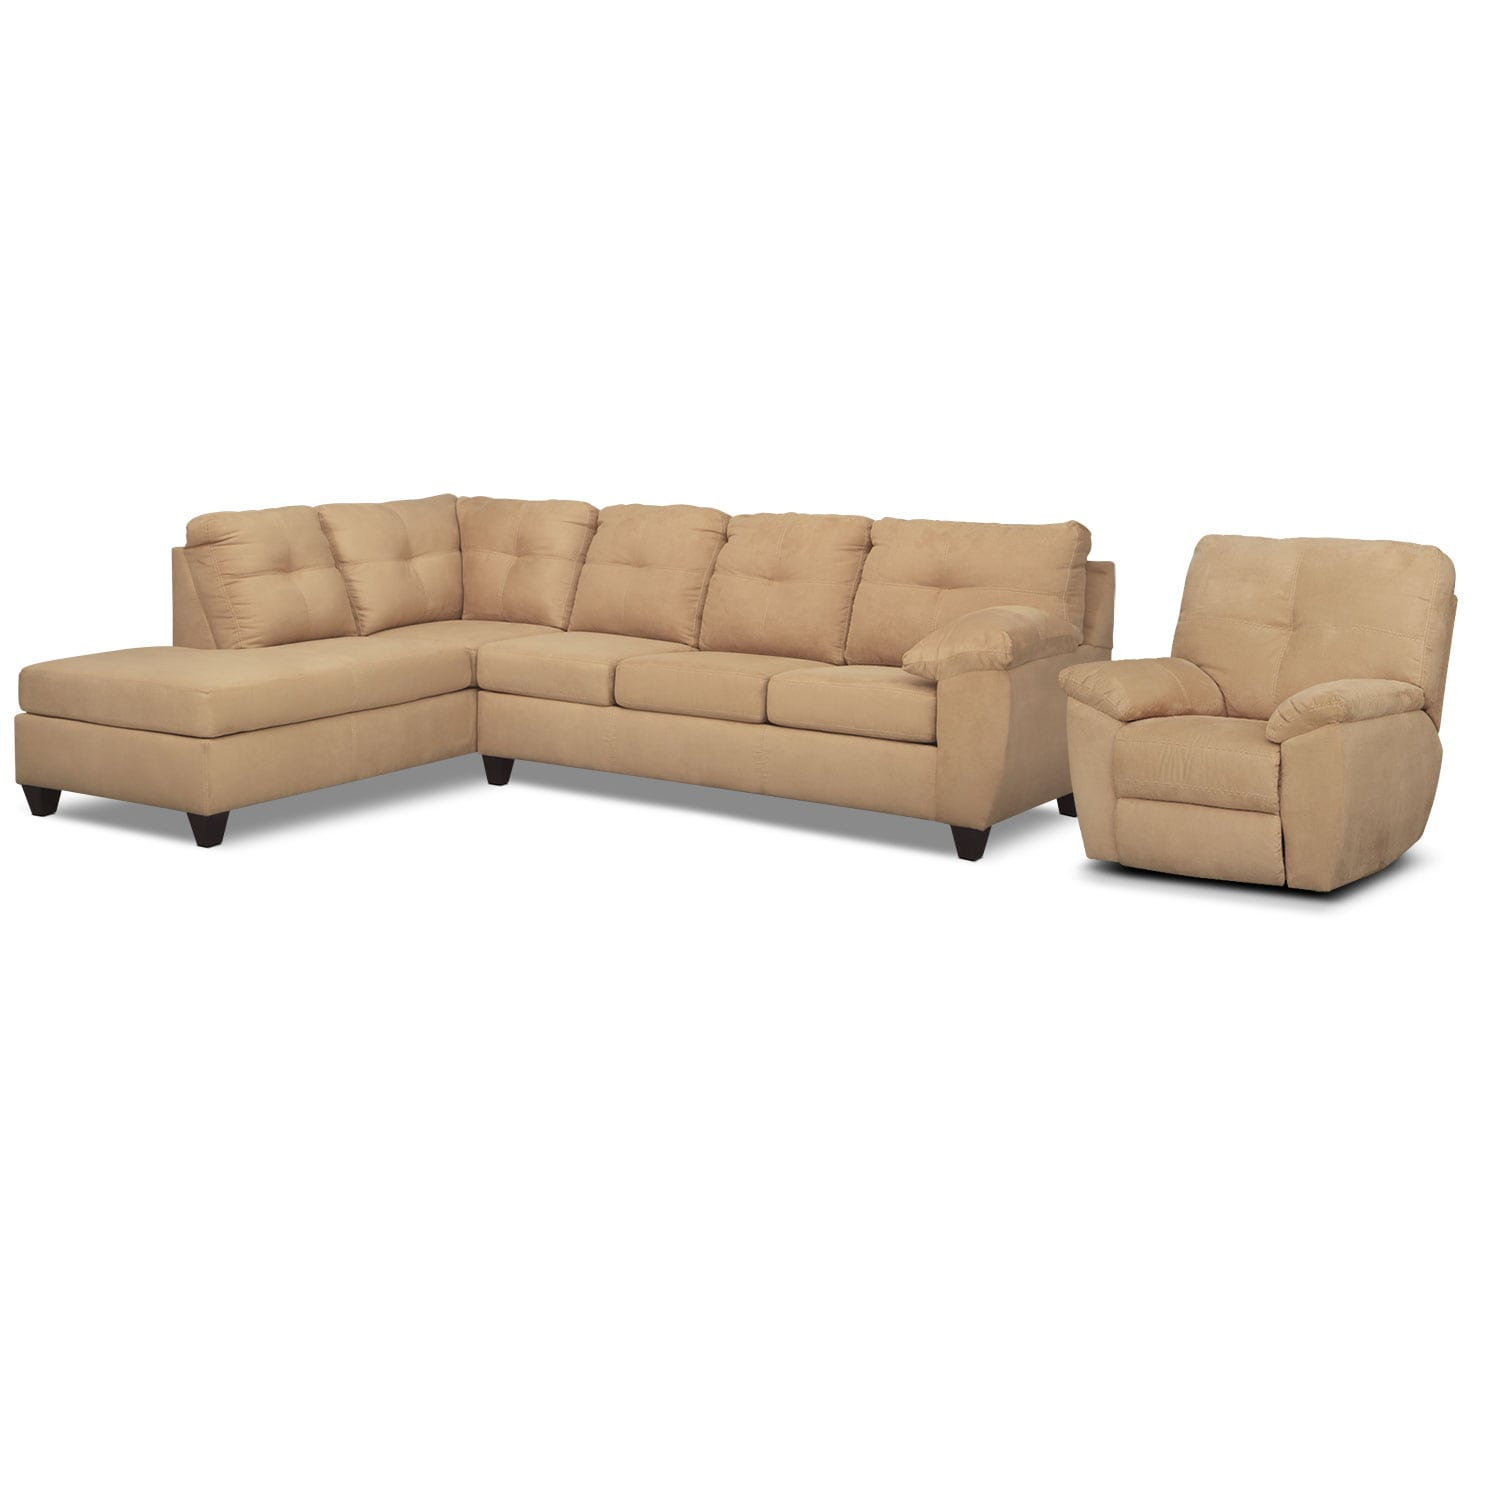 Rialto 2-Piece Sectional with  Left-Facing Chaise and Glider Recliner Set - Camel